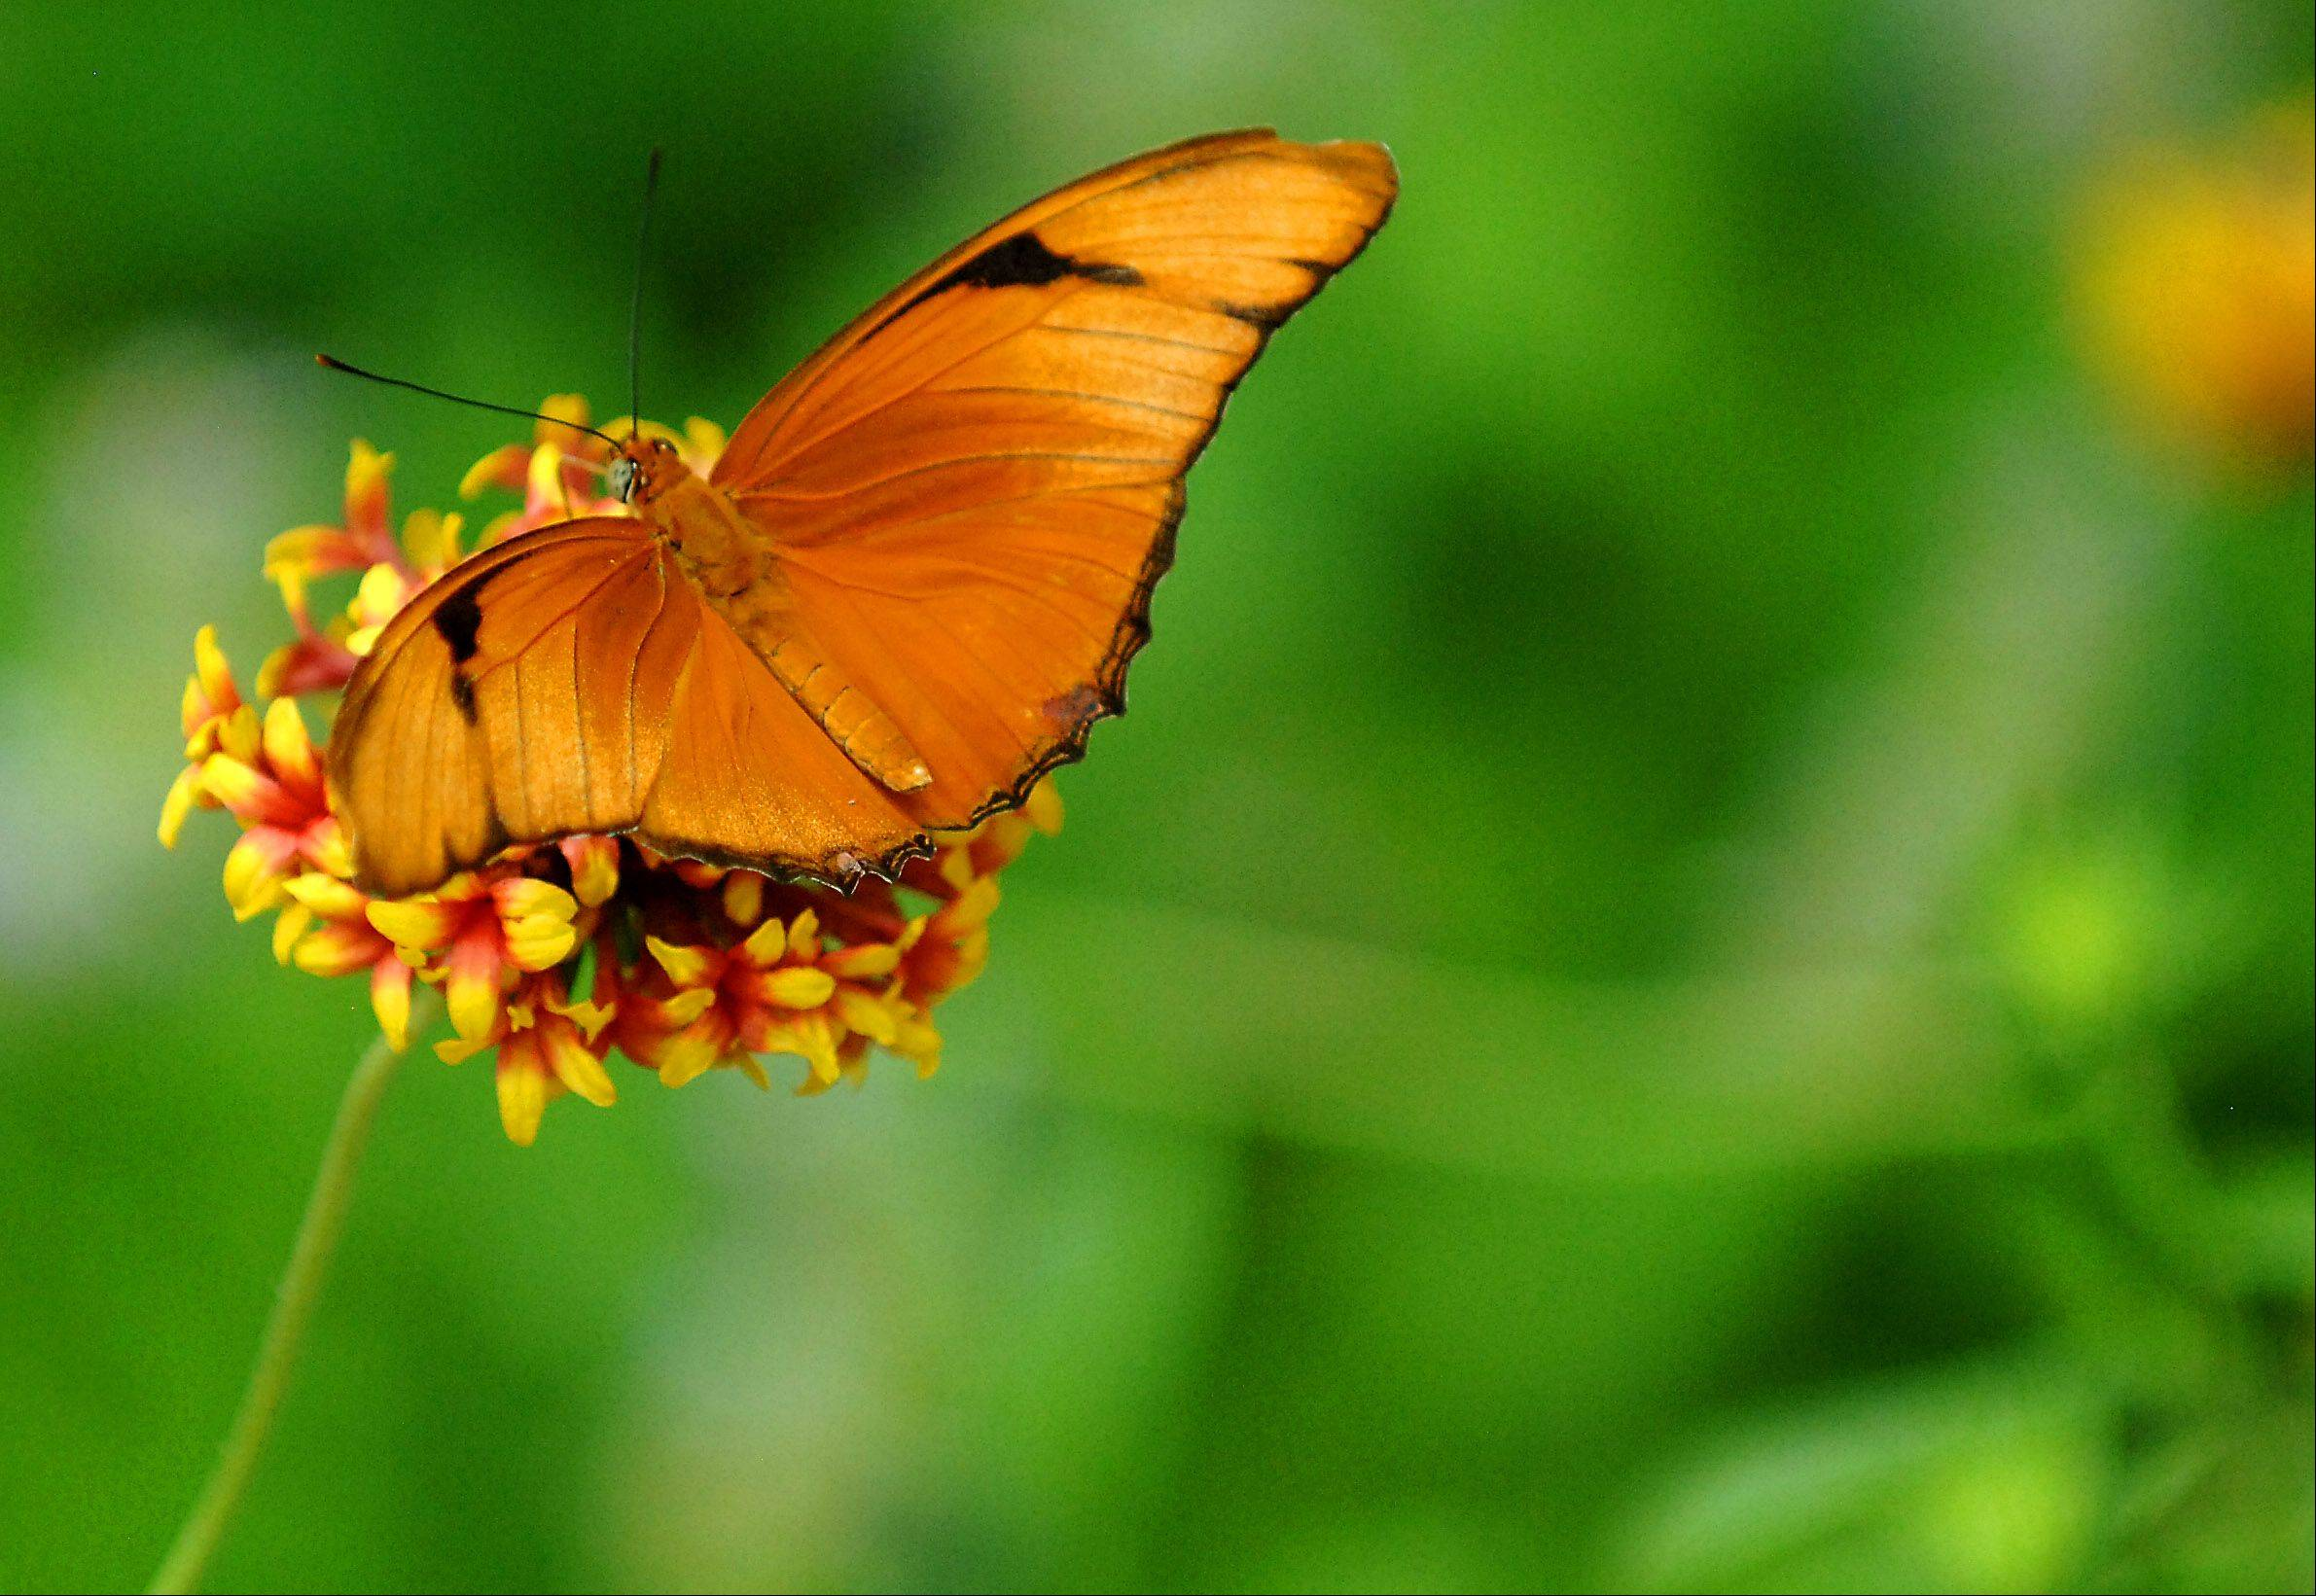 Butterflies never fare well if collected by humans. It's best to leave them in their habitat.